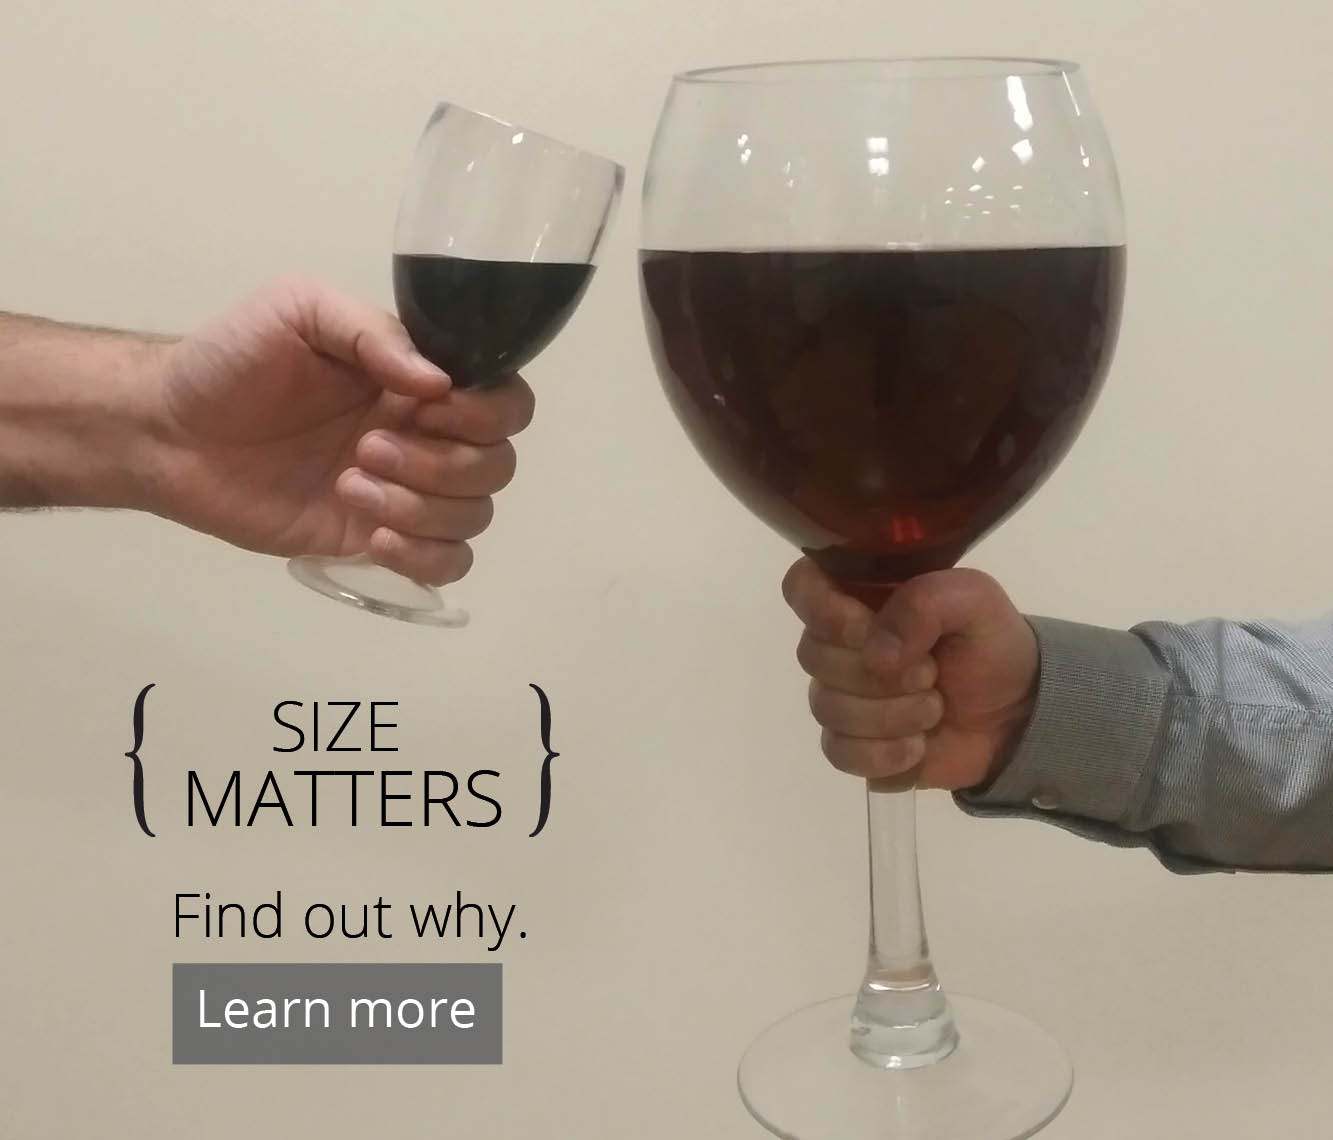 Size Matters. Find out why.